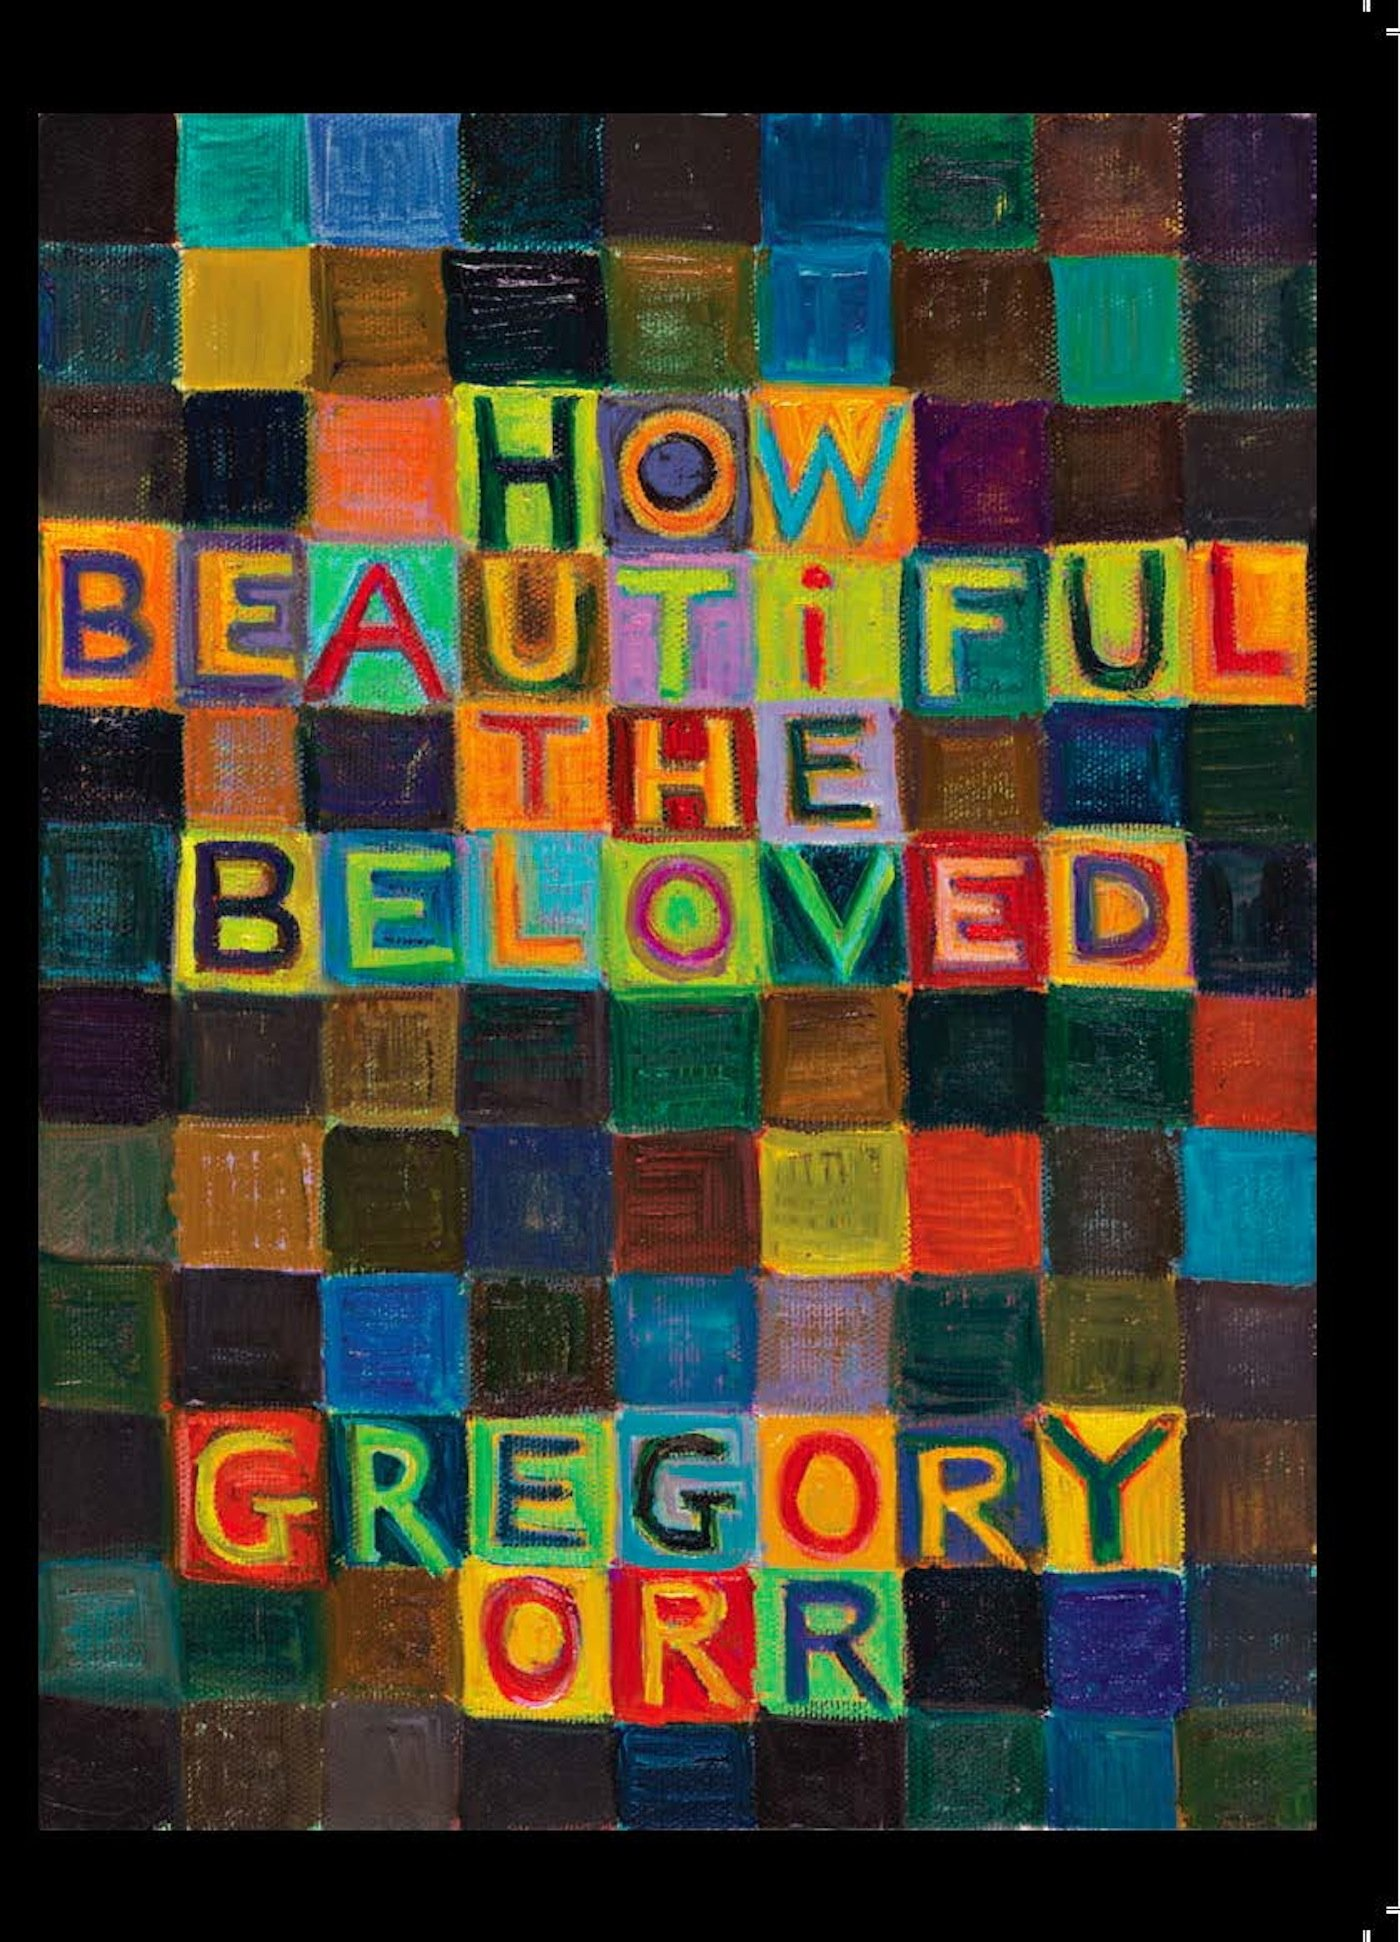 How Beautiful the Beloved: Orr, Gregory: 9781556592836: Amazon.com: Books